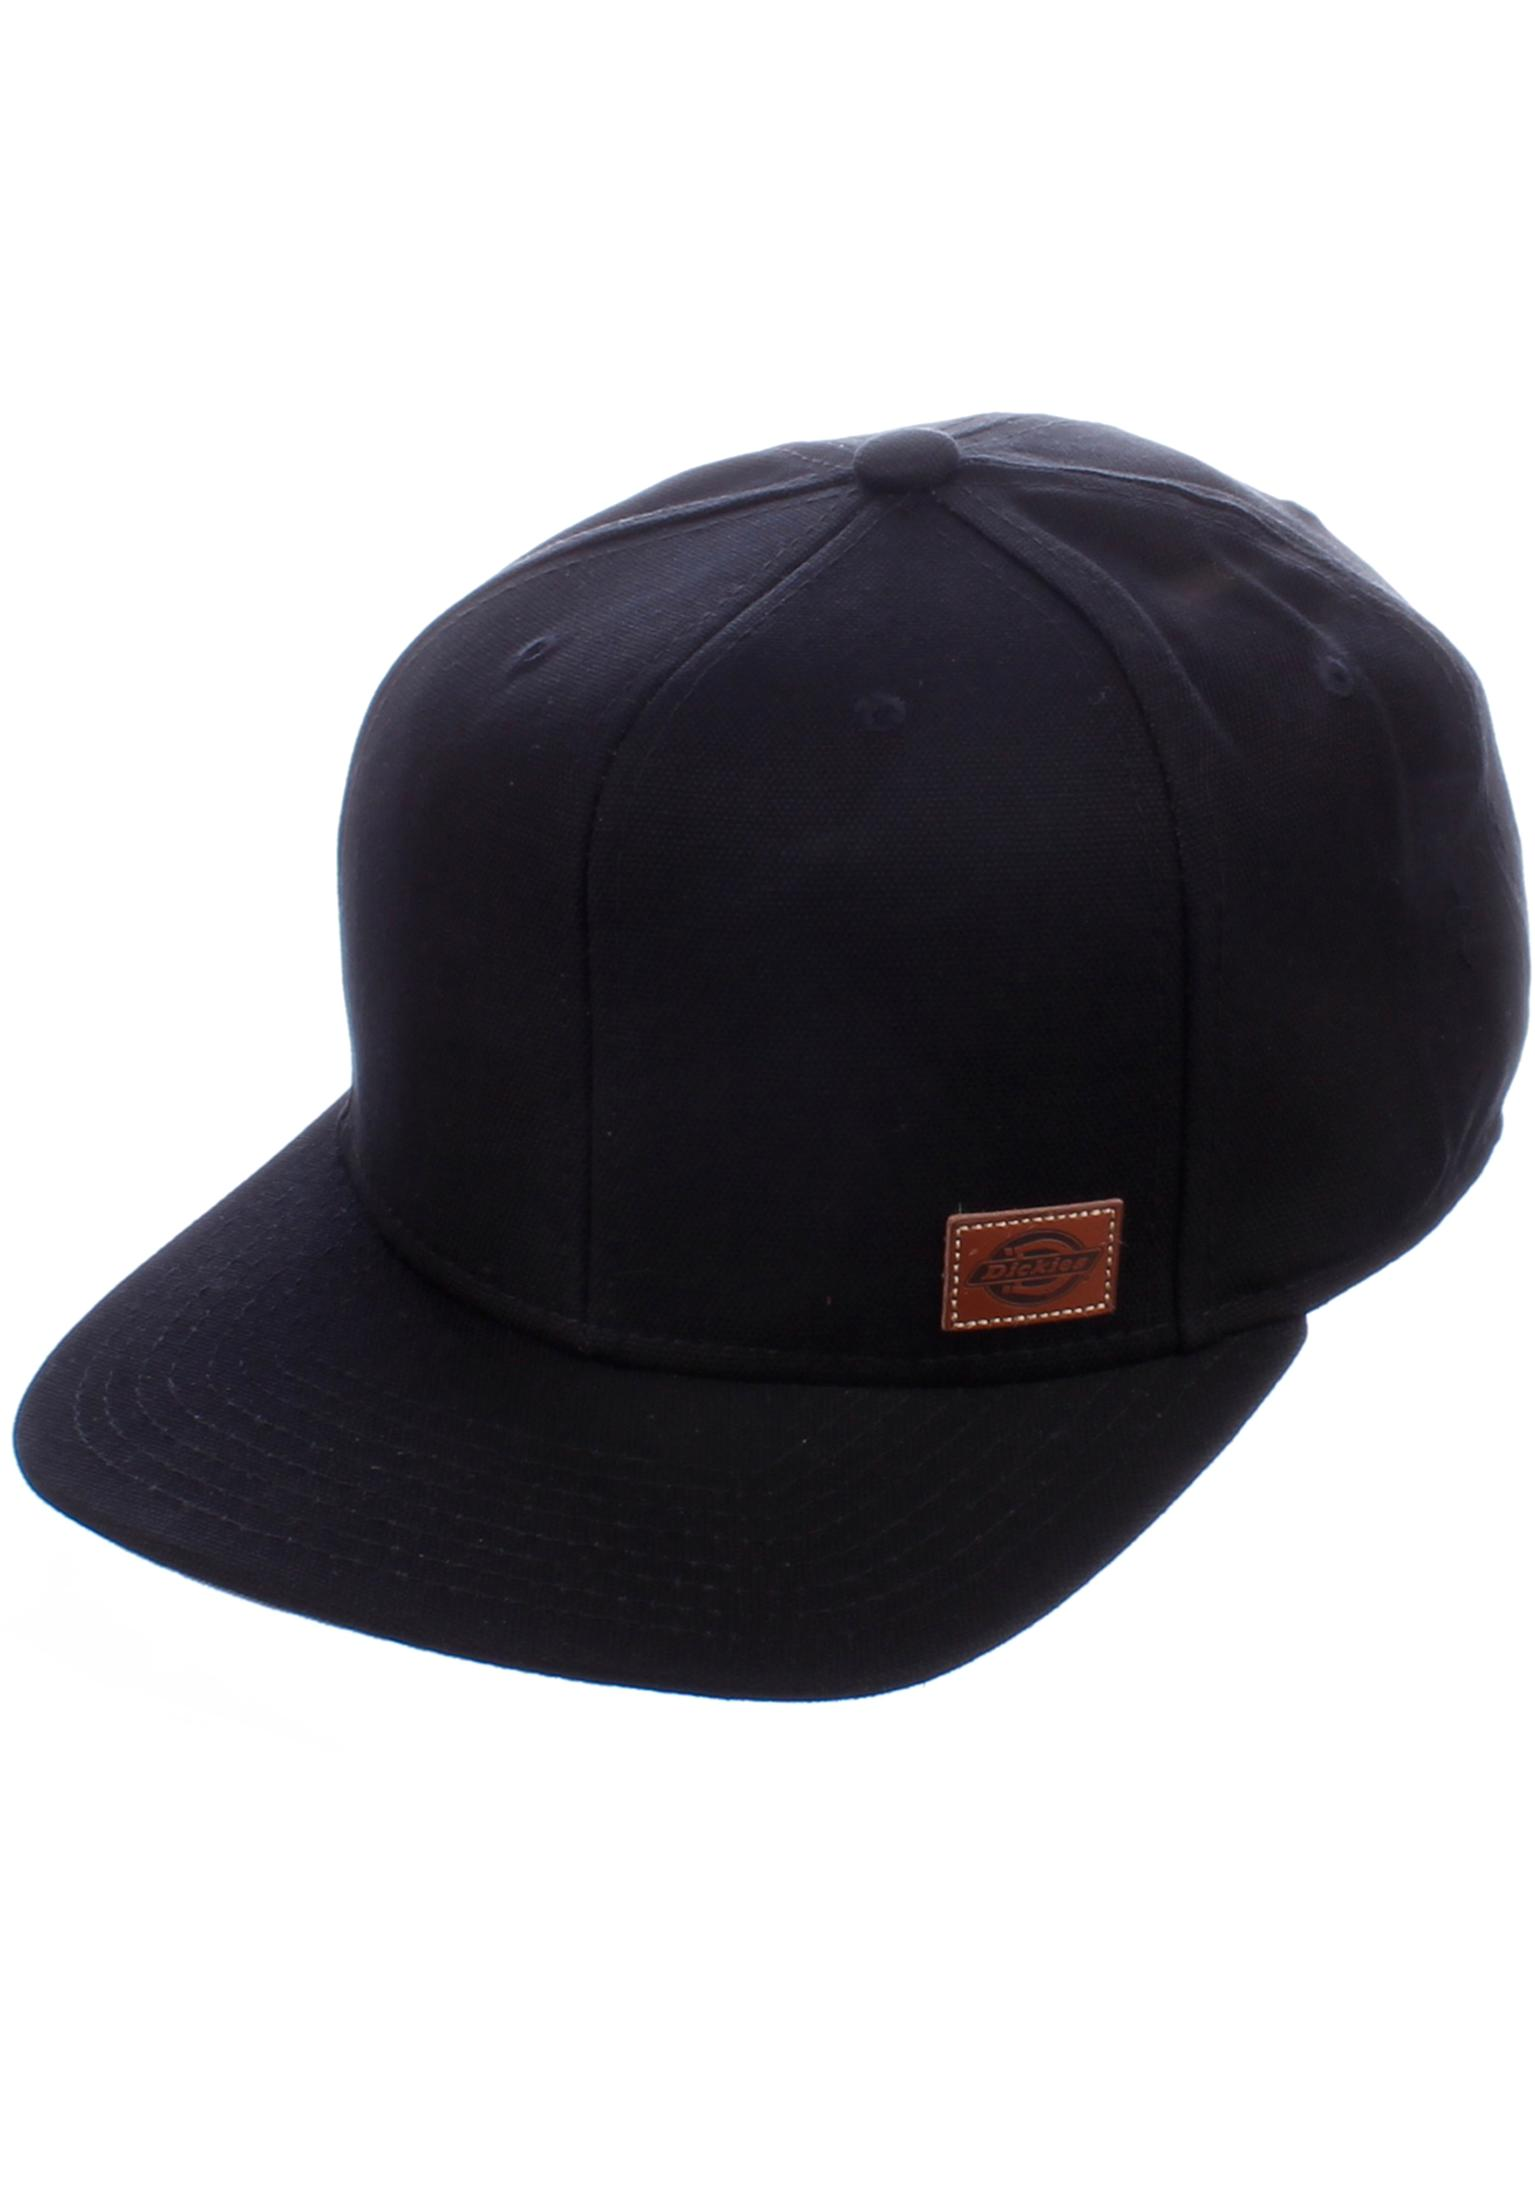 Get Caps for Men in the Titus Onlineshop  4f8f32ea6d1c